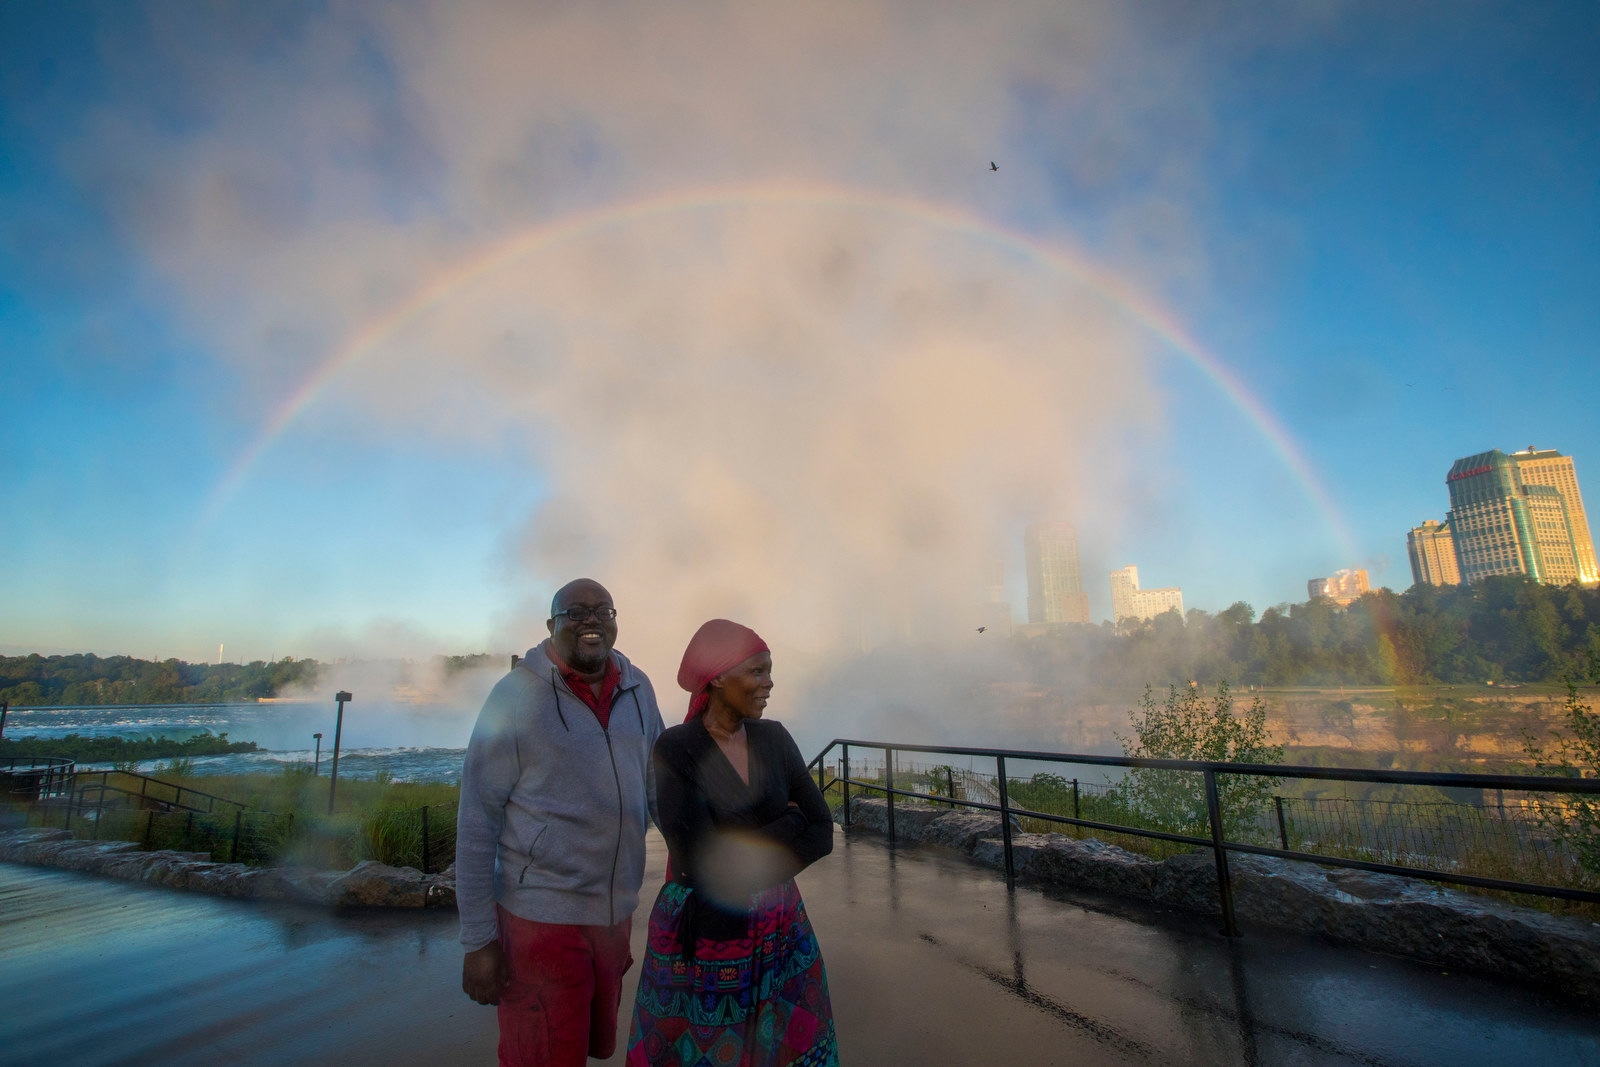 James and Sta Maodzwa, tourists visiting from Zimbabwe, have their own private rainbow at Terrapin Point.